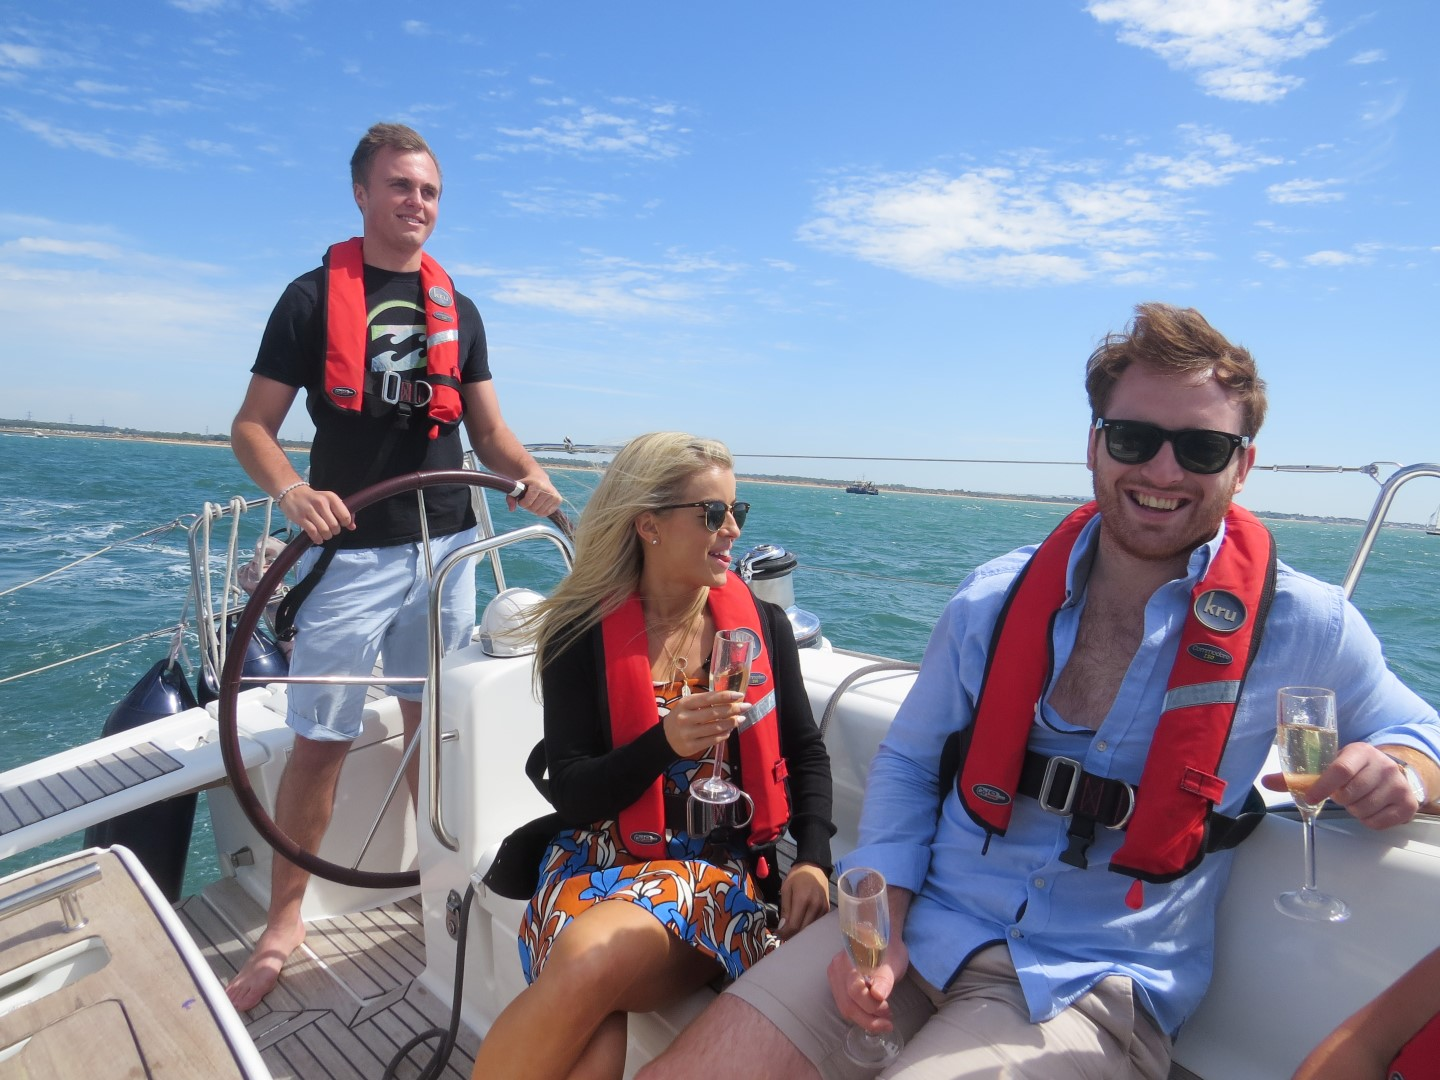 Luxury sailing day on the Solent